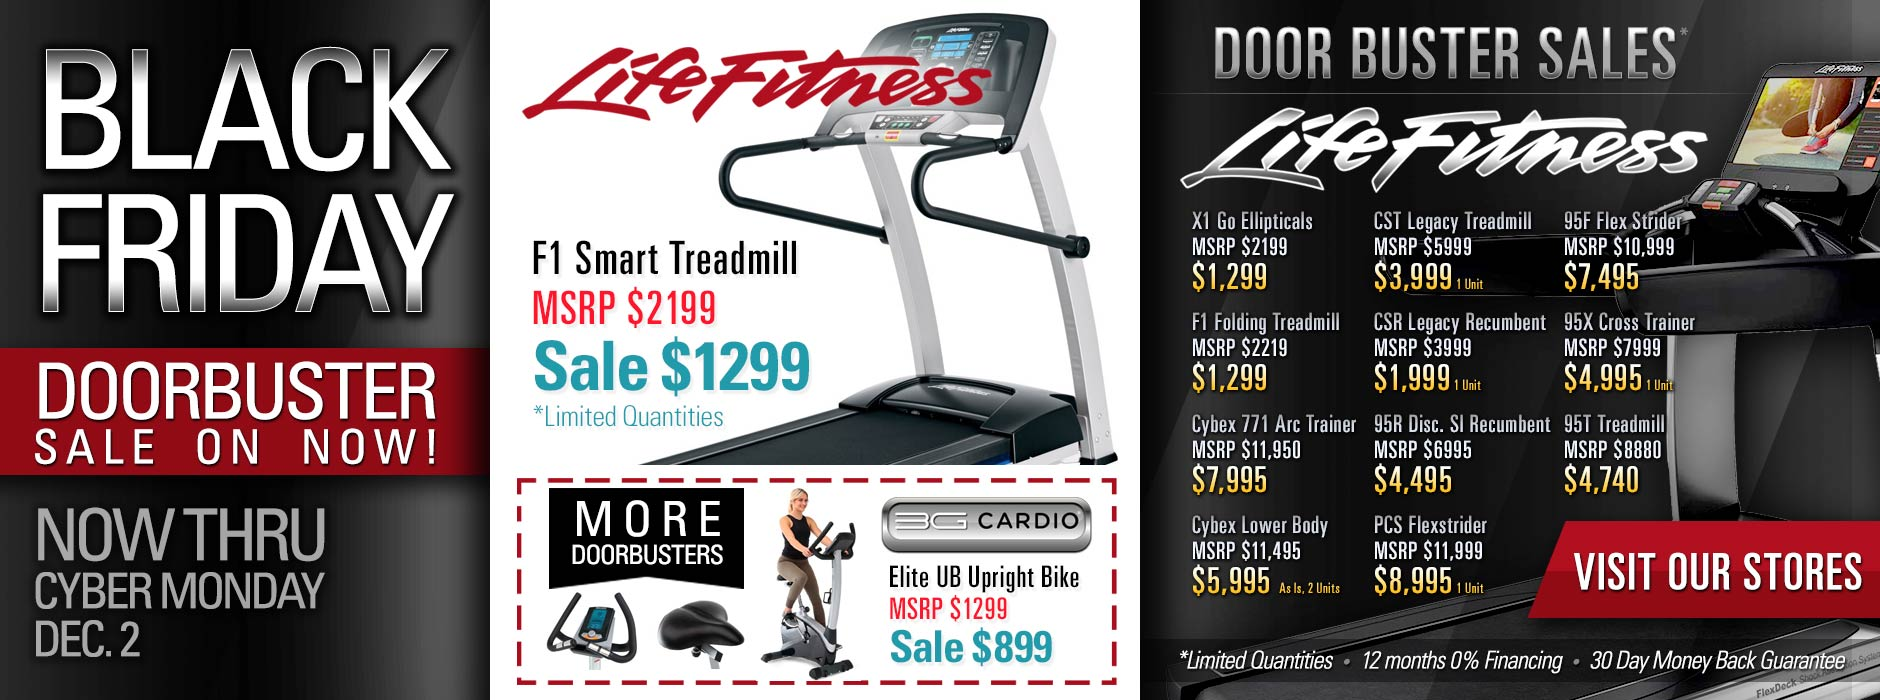 Black Friday Fitness Equipment Sale including - LIfe Fitness Equipment - 3G Cardio Fitness Equipment